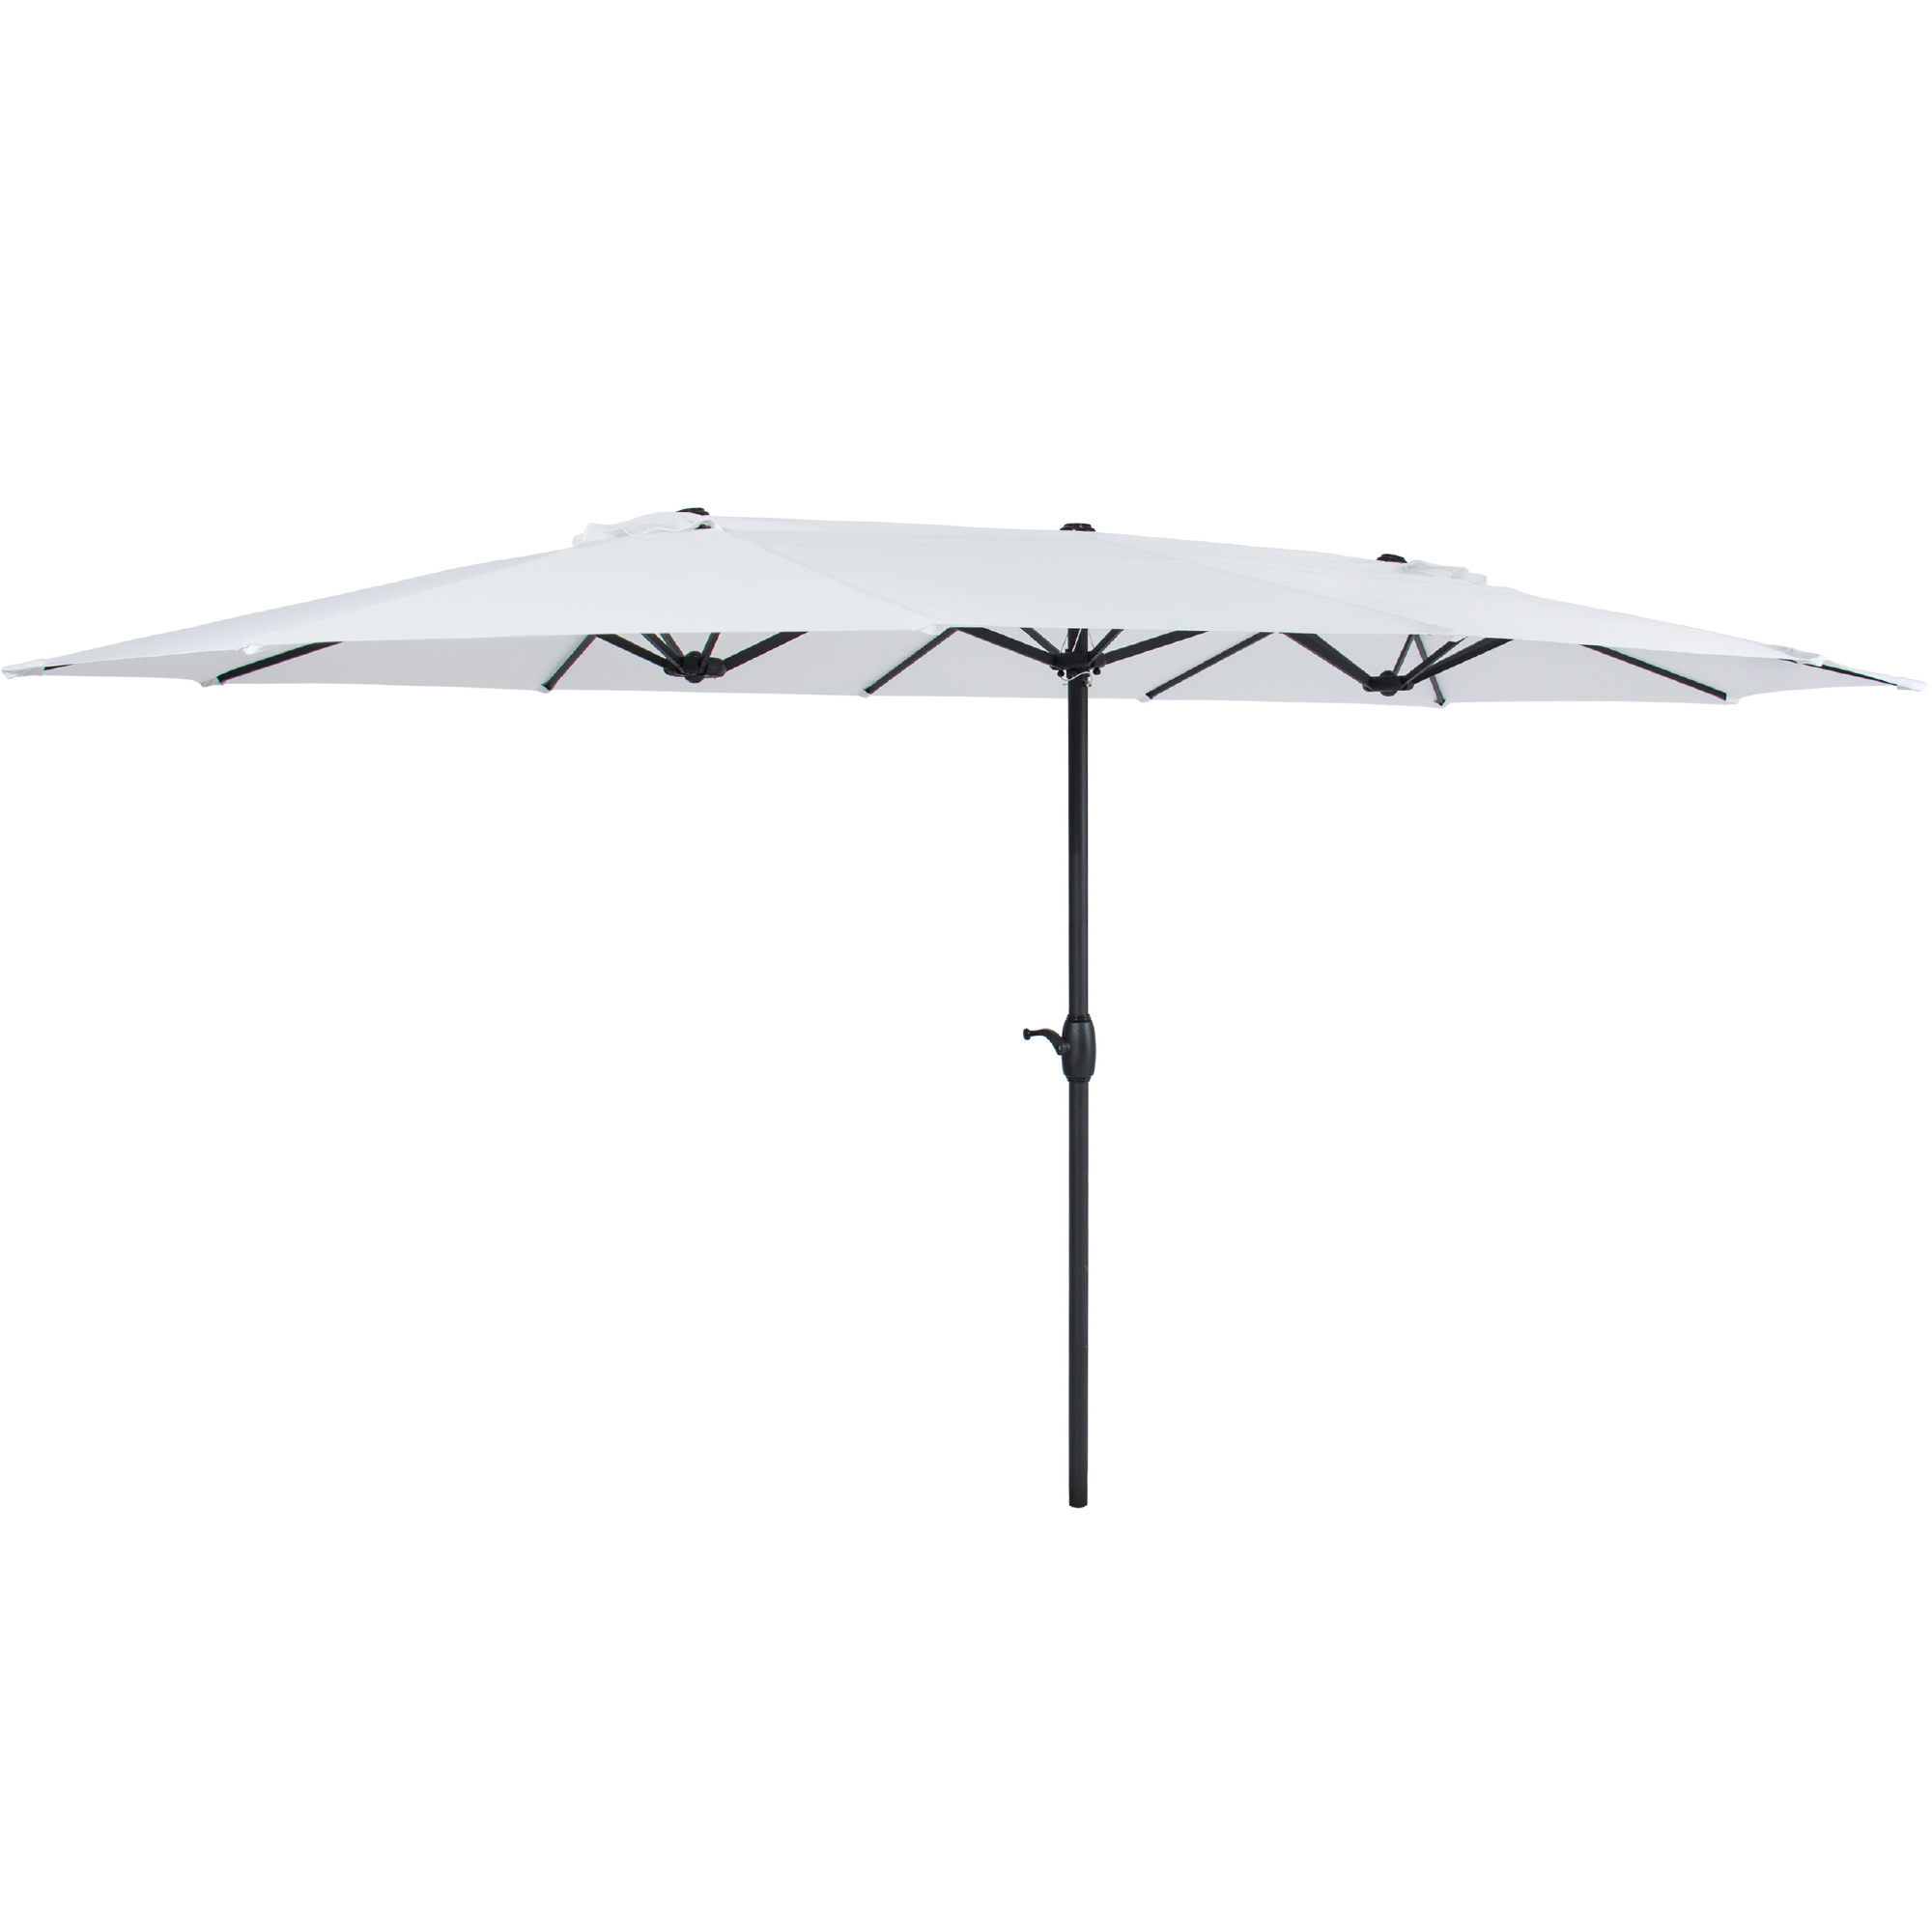 best choice products 15x9ft large double sided rectangular outdoor aluminum twin patio market umbrella w crank white walmart com